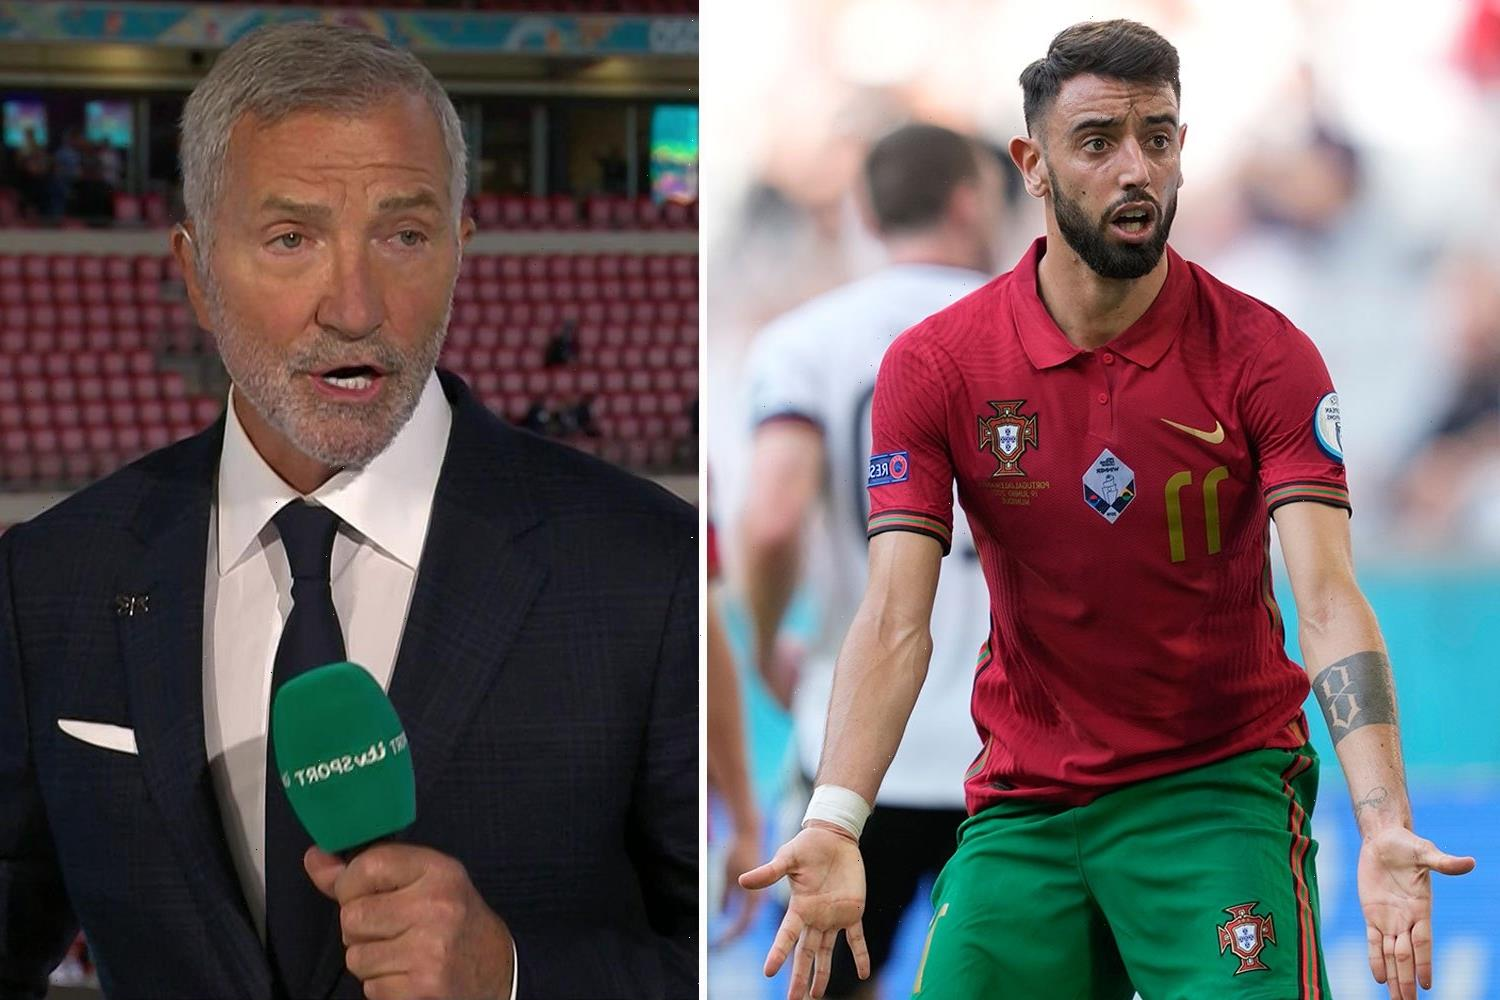 Souness says Bruno Fernandes 'would not have lasted five minutes in my dressing room' after Man Utd star's moaning